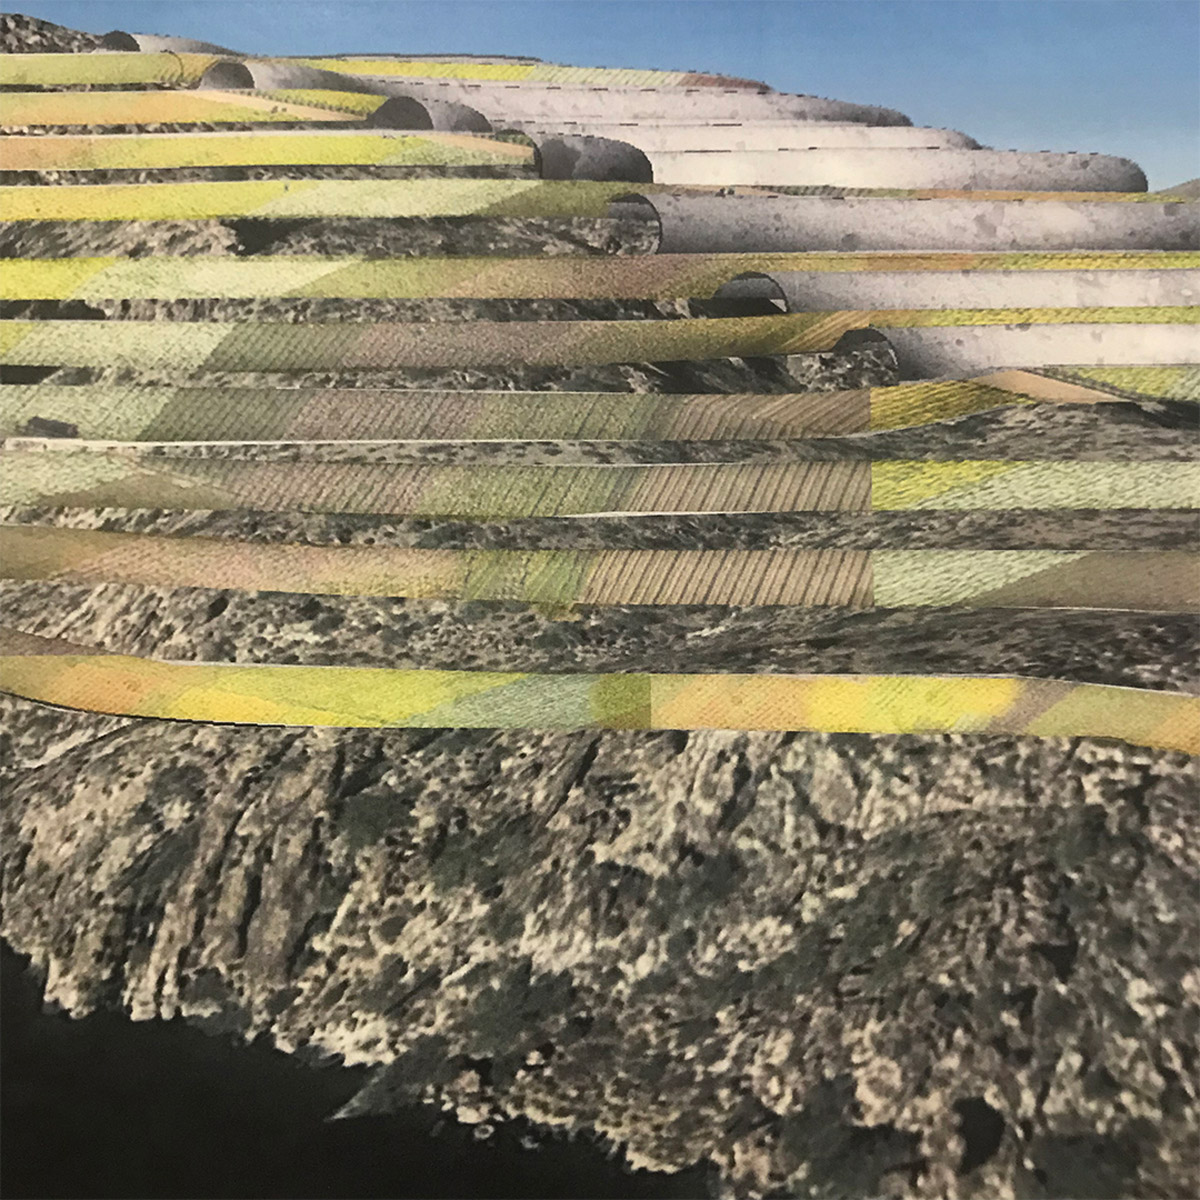 Concept collage study for a housing built into the contours of the mountains above Saguaro Lake by student Camille Medeiros